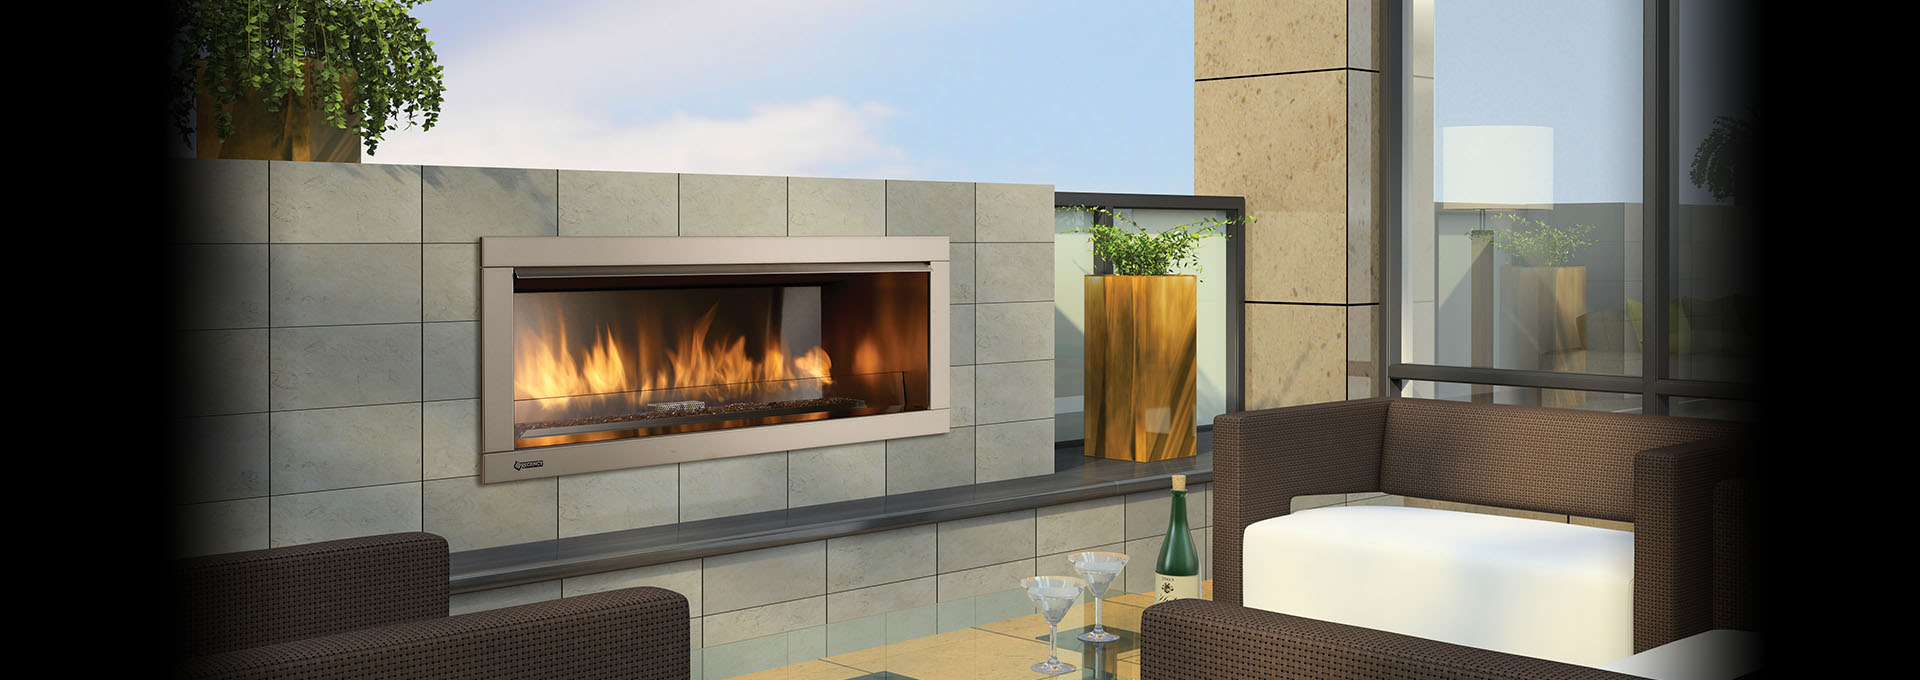 hzo42 modern outdoor gas fireplace outdoor gas fireplaces